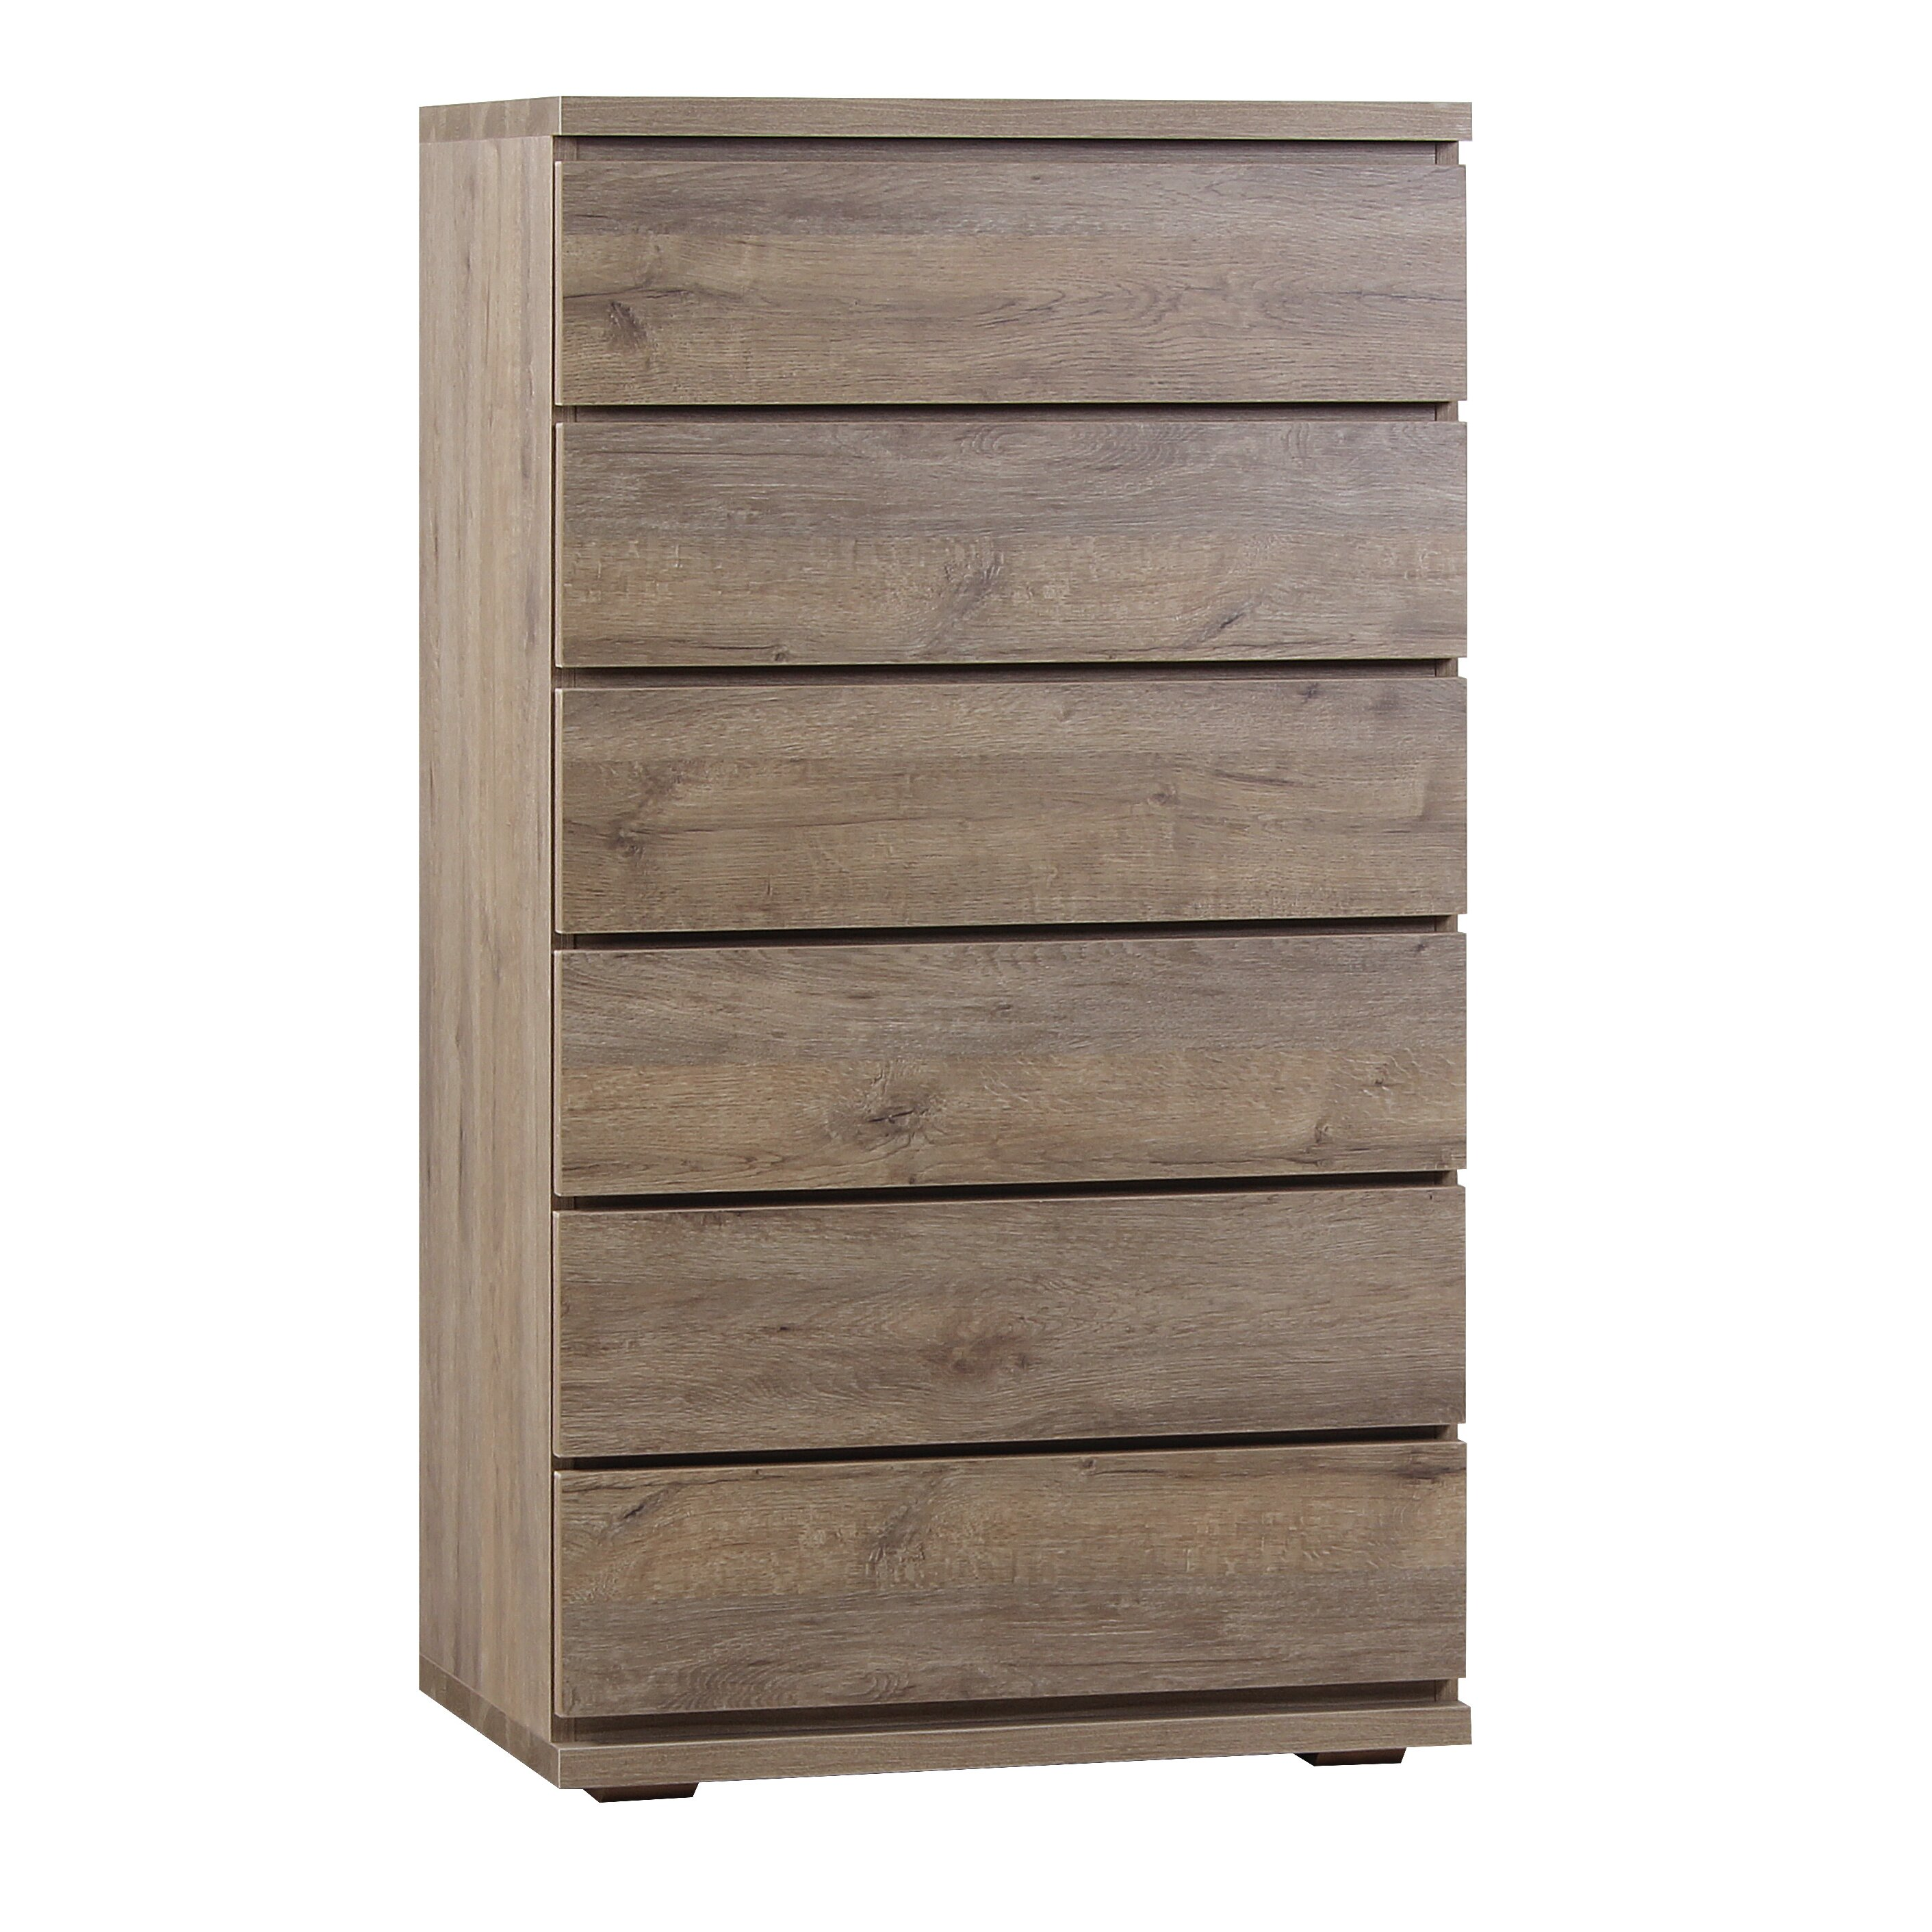 werkstadt skandi chiffonnier 6 drawer chest wayfair uk. Black Bedroom Furniture Sets. Home Design Ideas